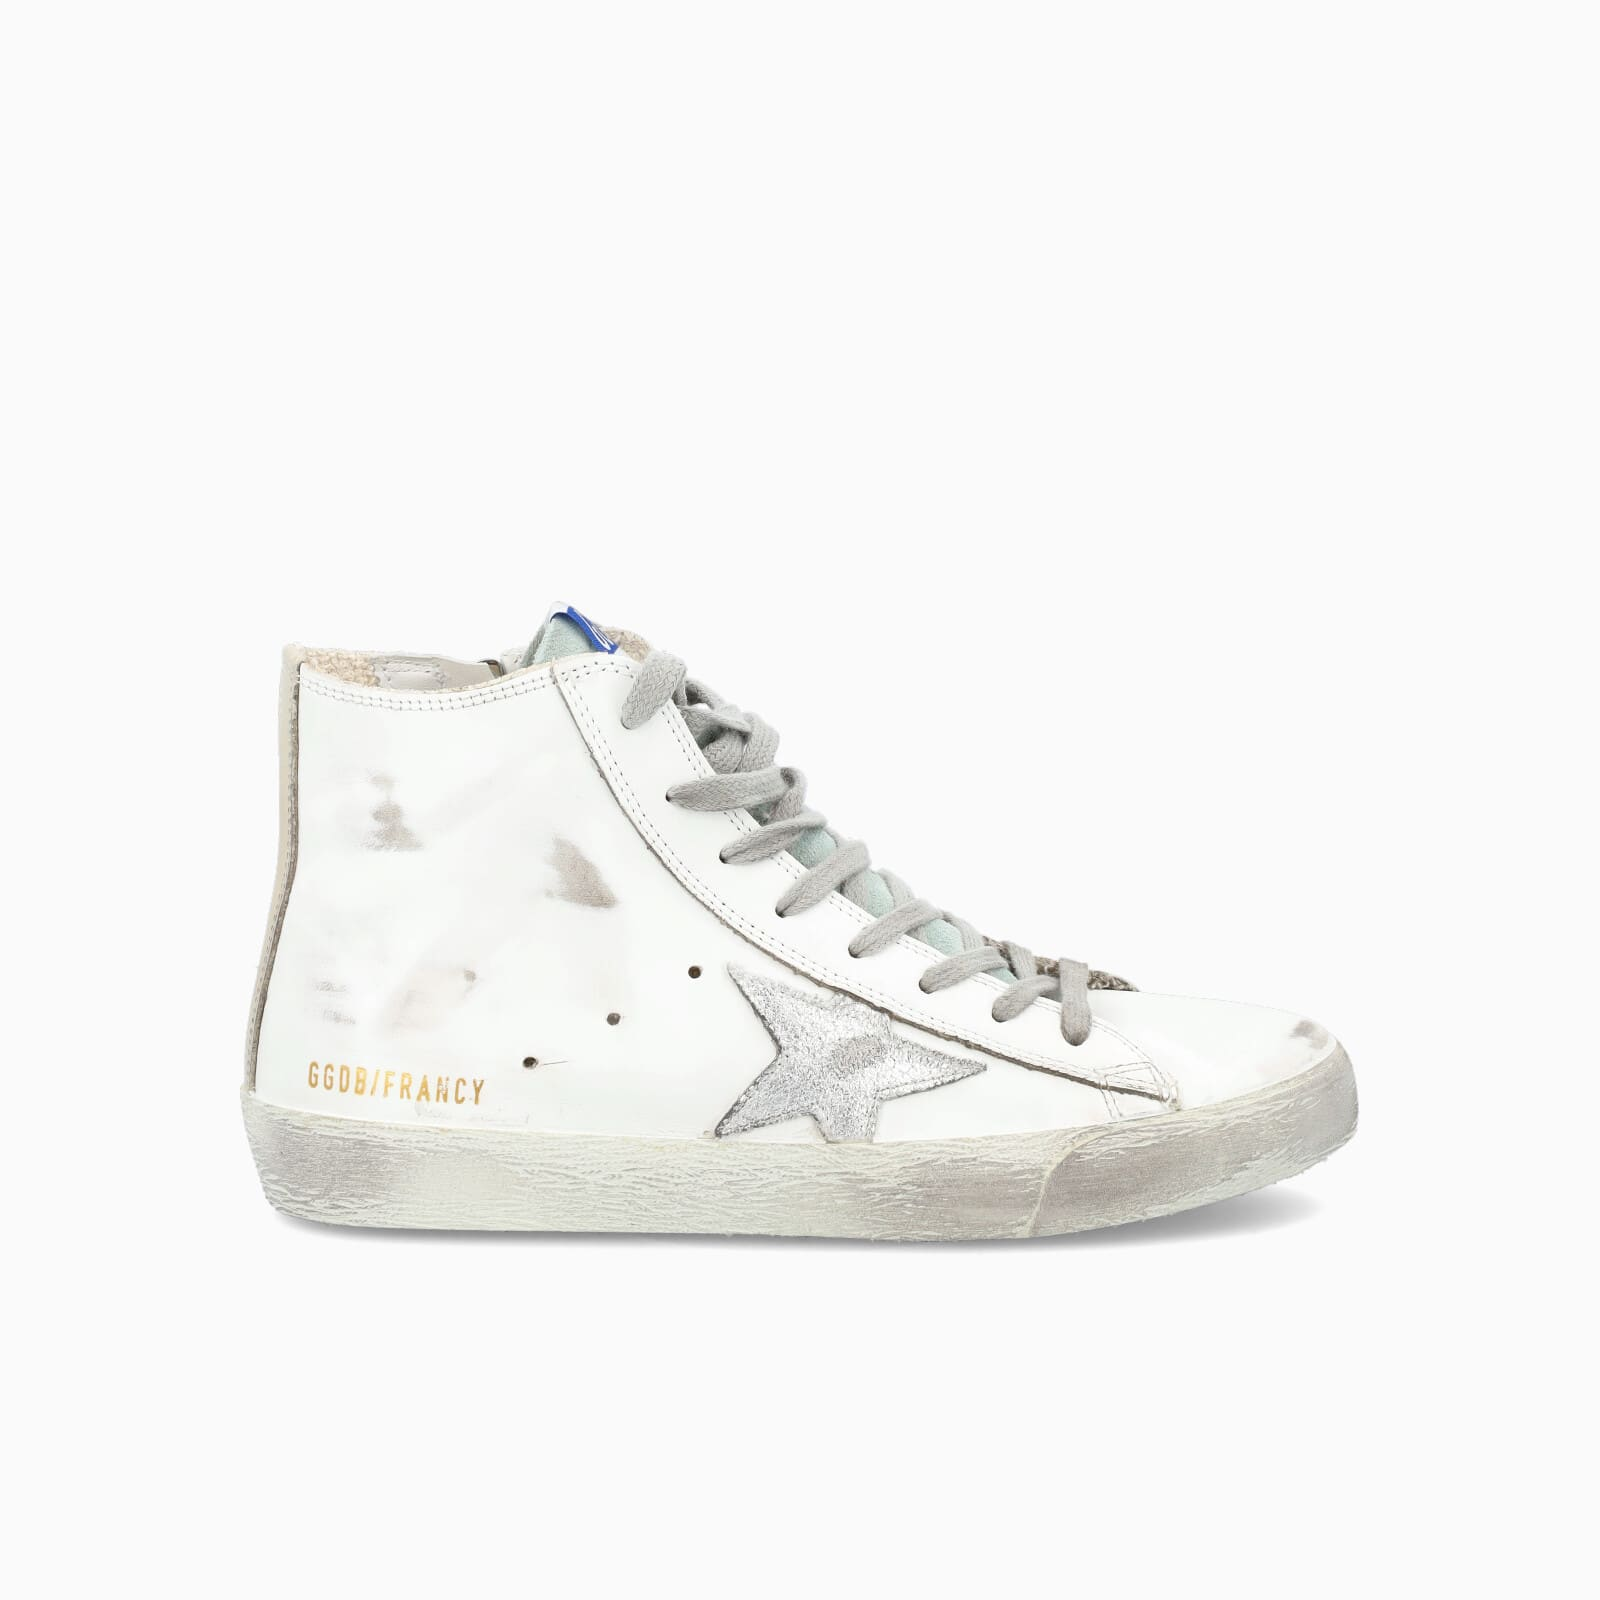 Golden Goose Francy High-top Sneakers With Silver Star